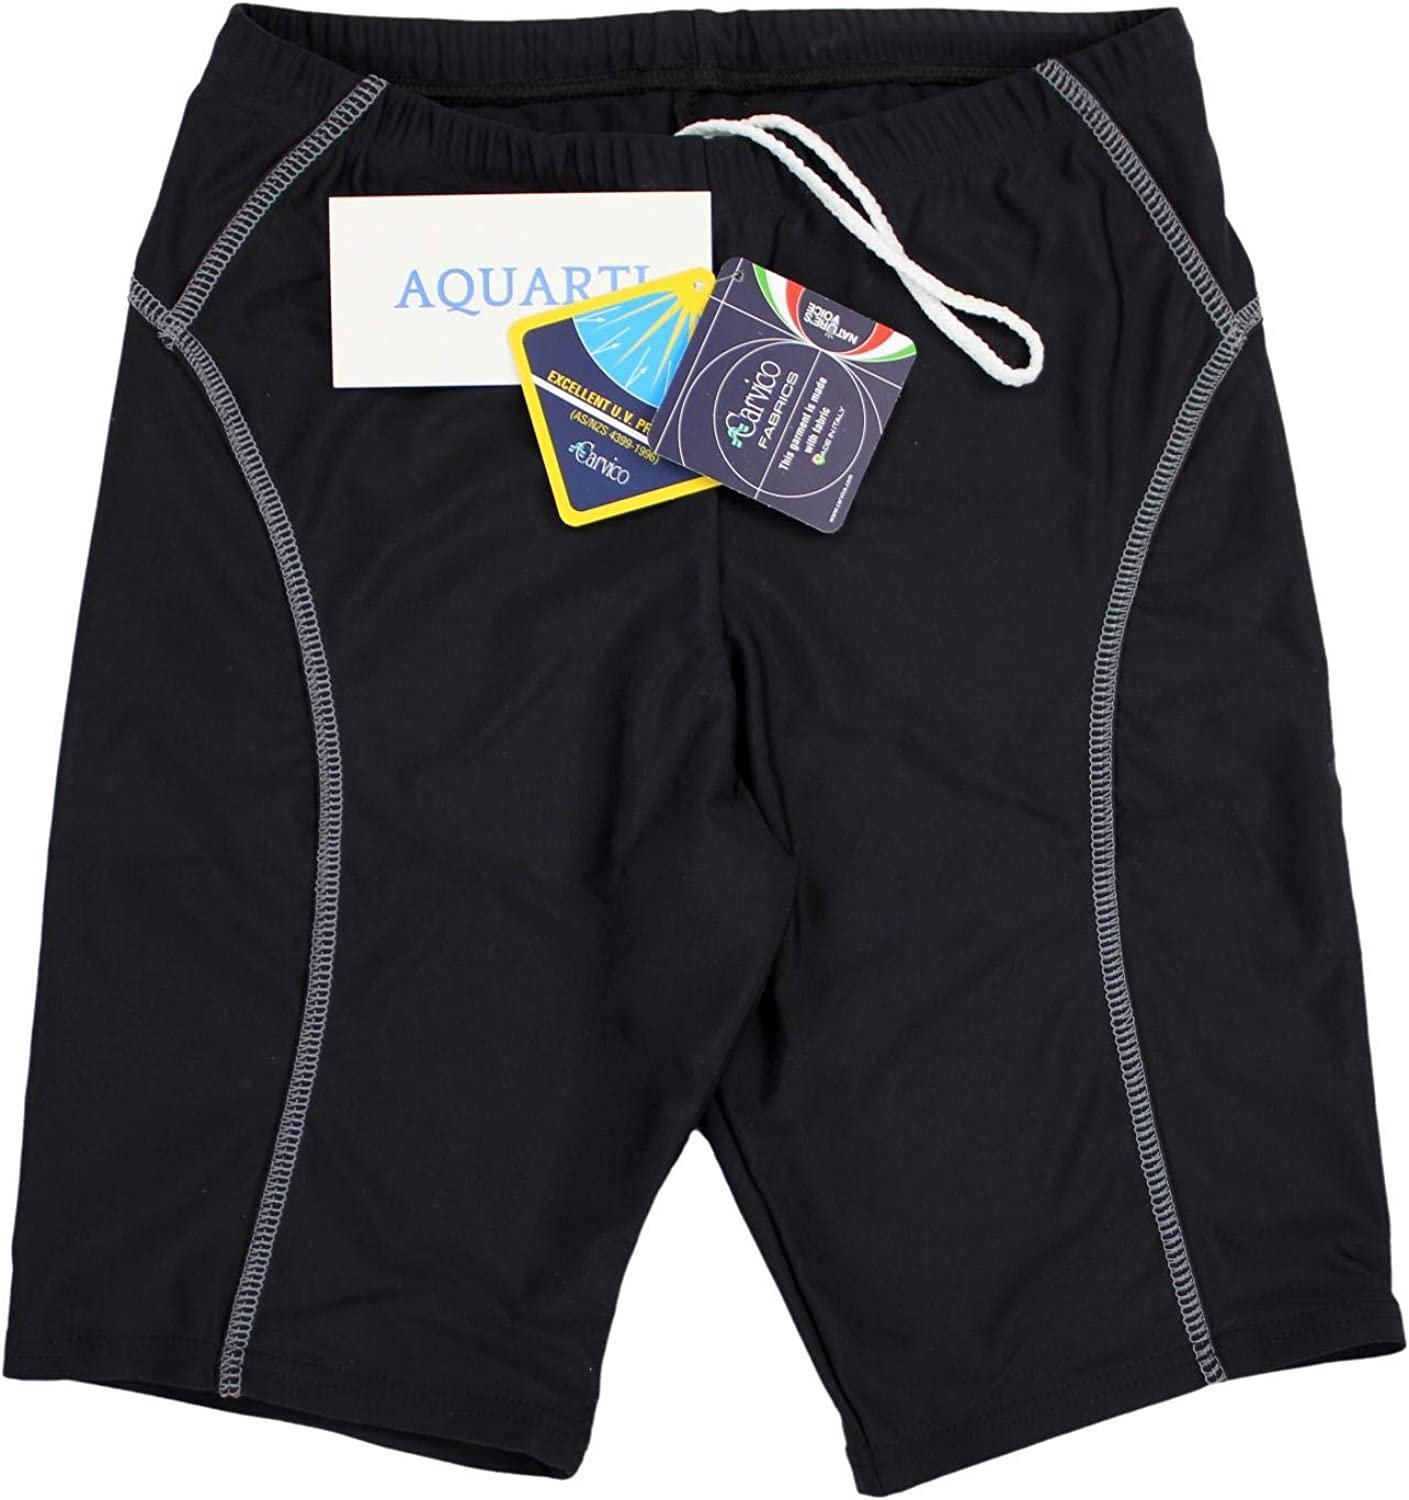 Aquarti Mens Swimming Trunks Jammer with Contrast Seams